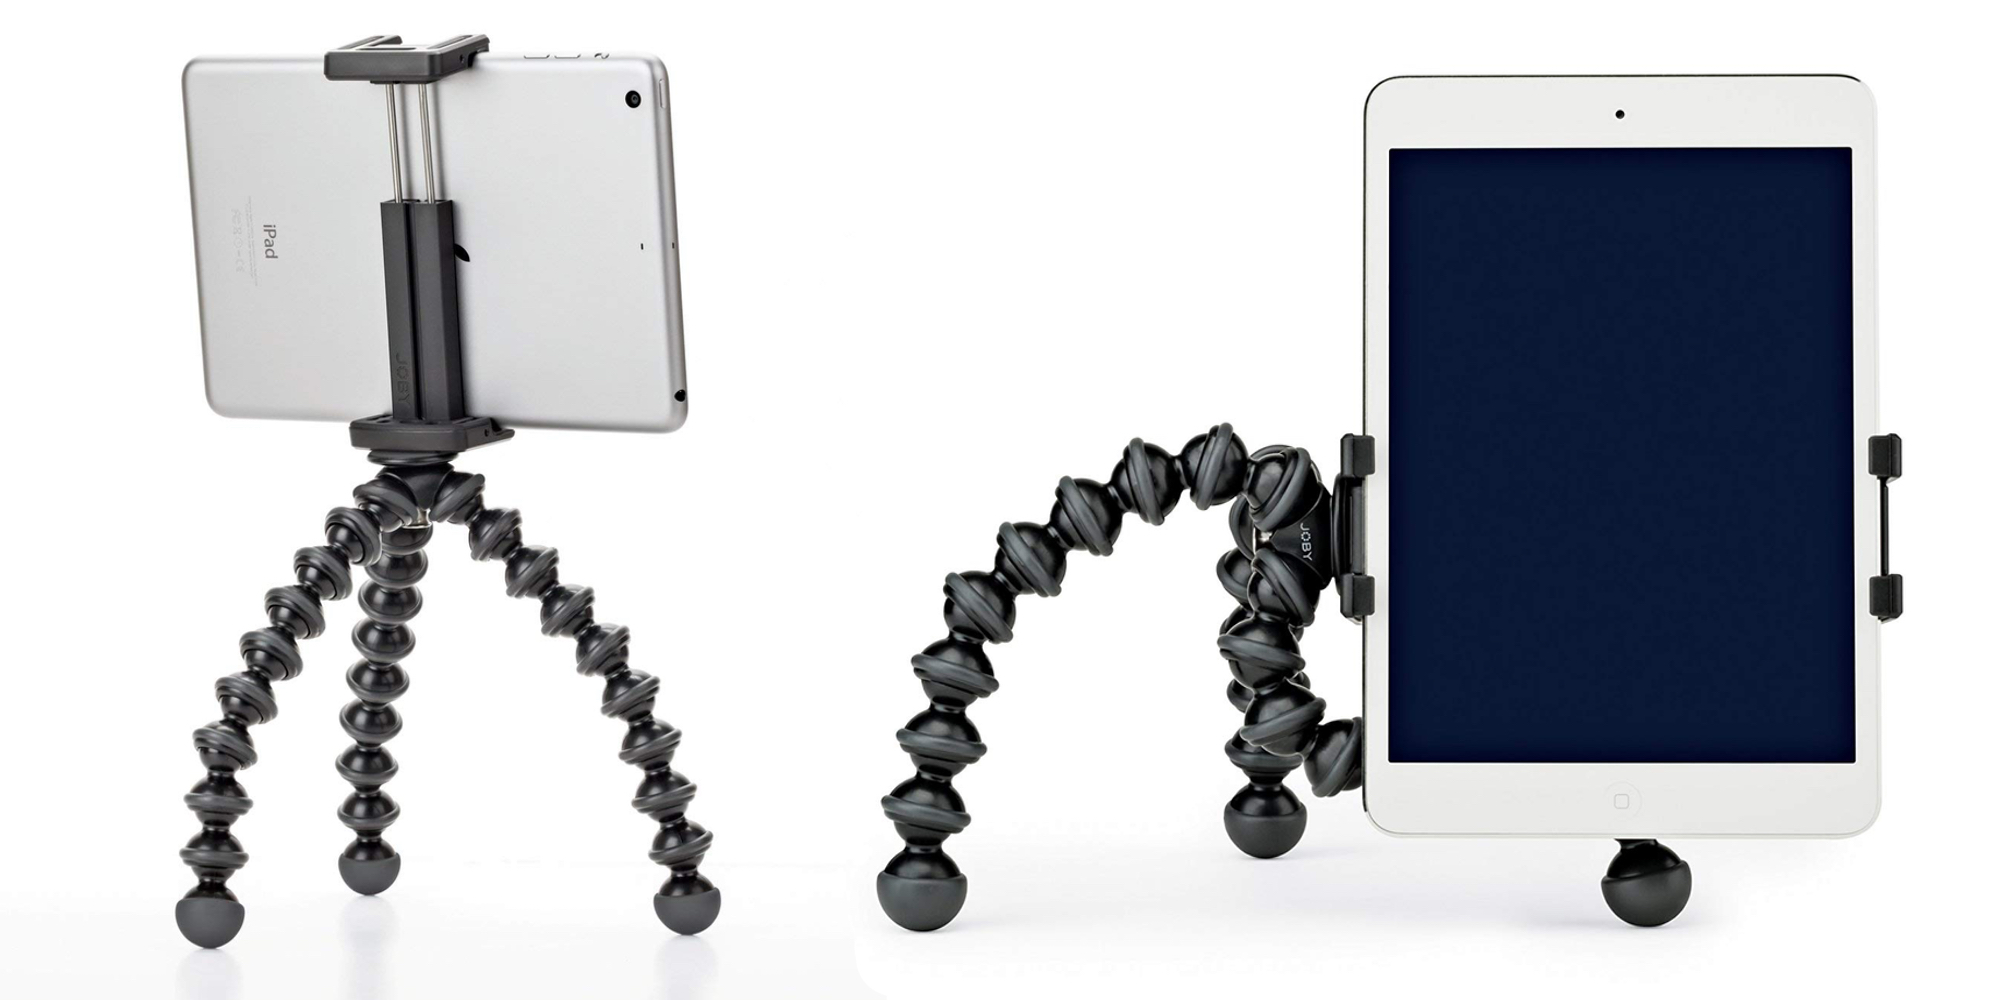 JOBY's GripTight GorillaPod Tablet Stand falls to new Amazon low at $17.50 (Reg. $25)